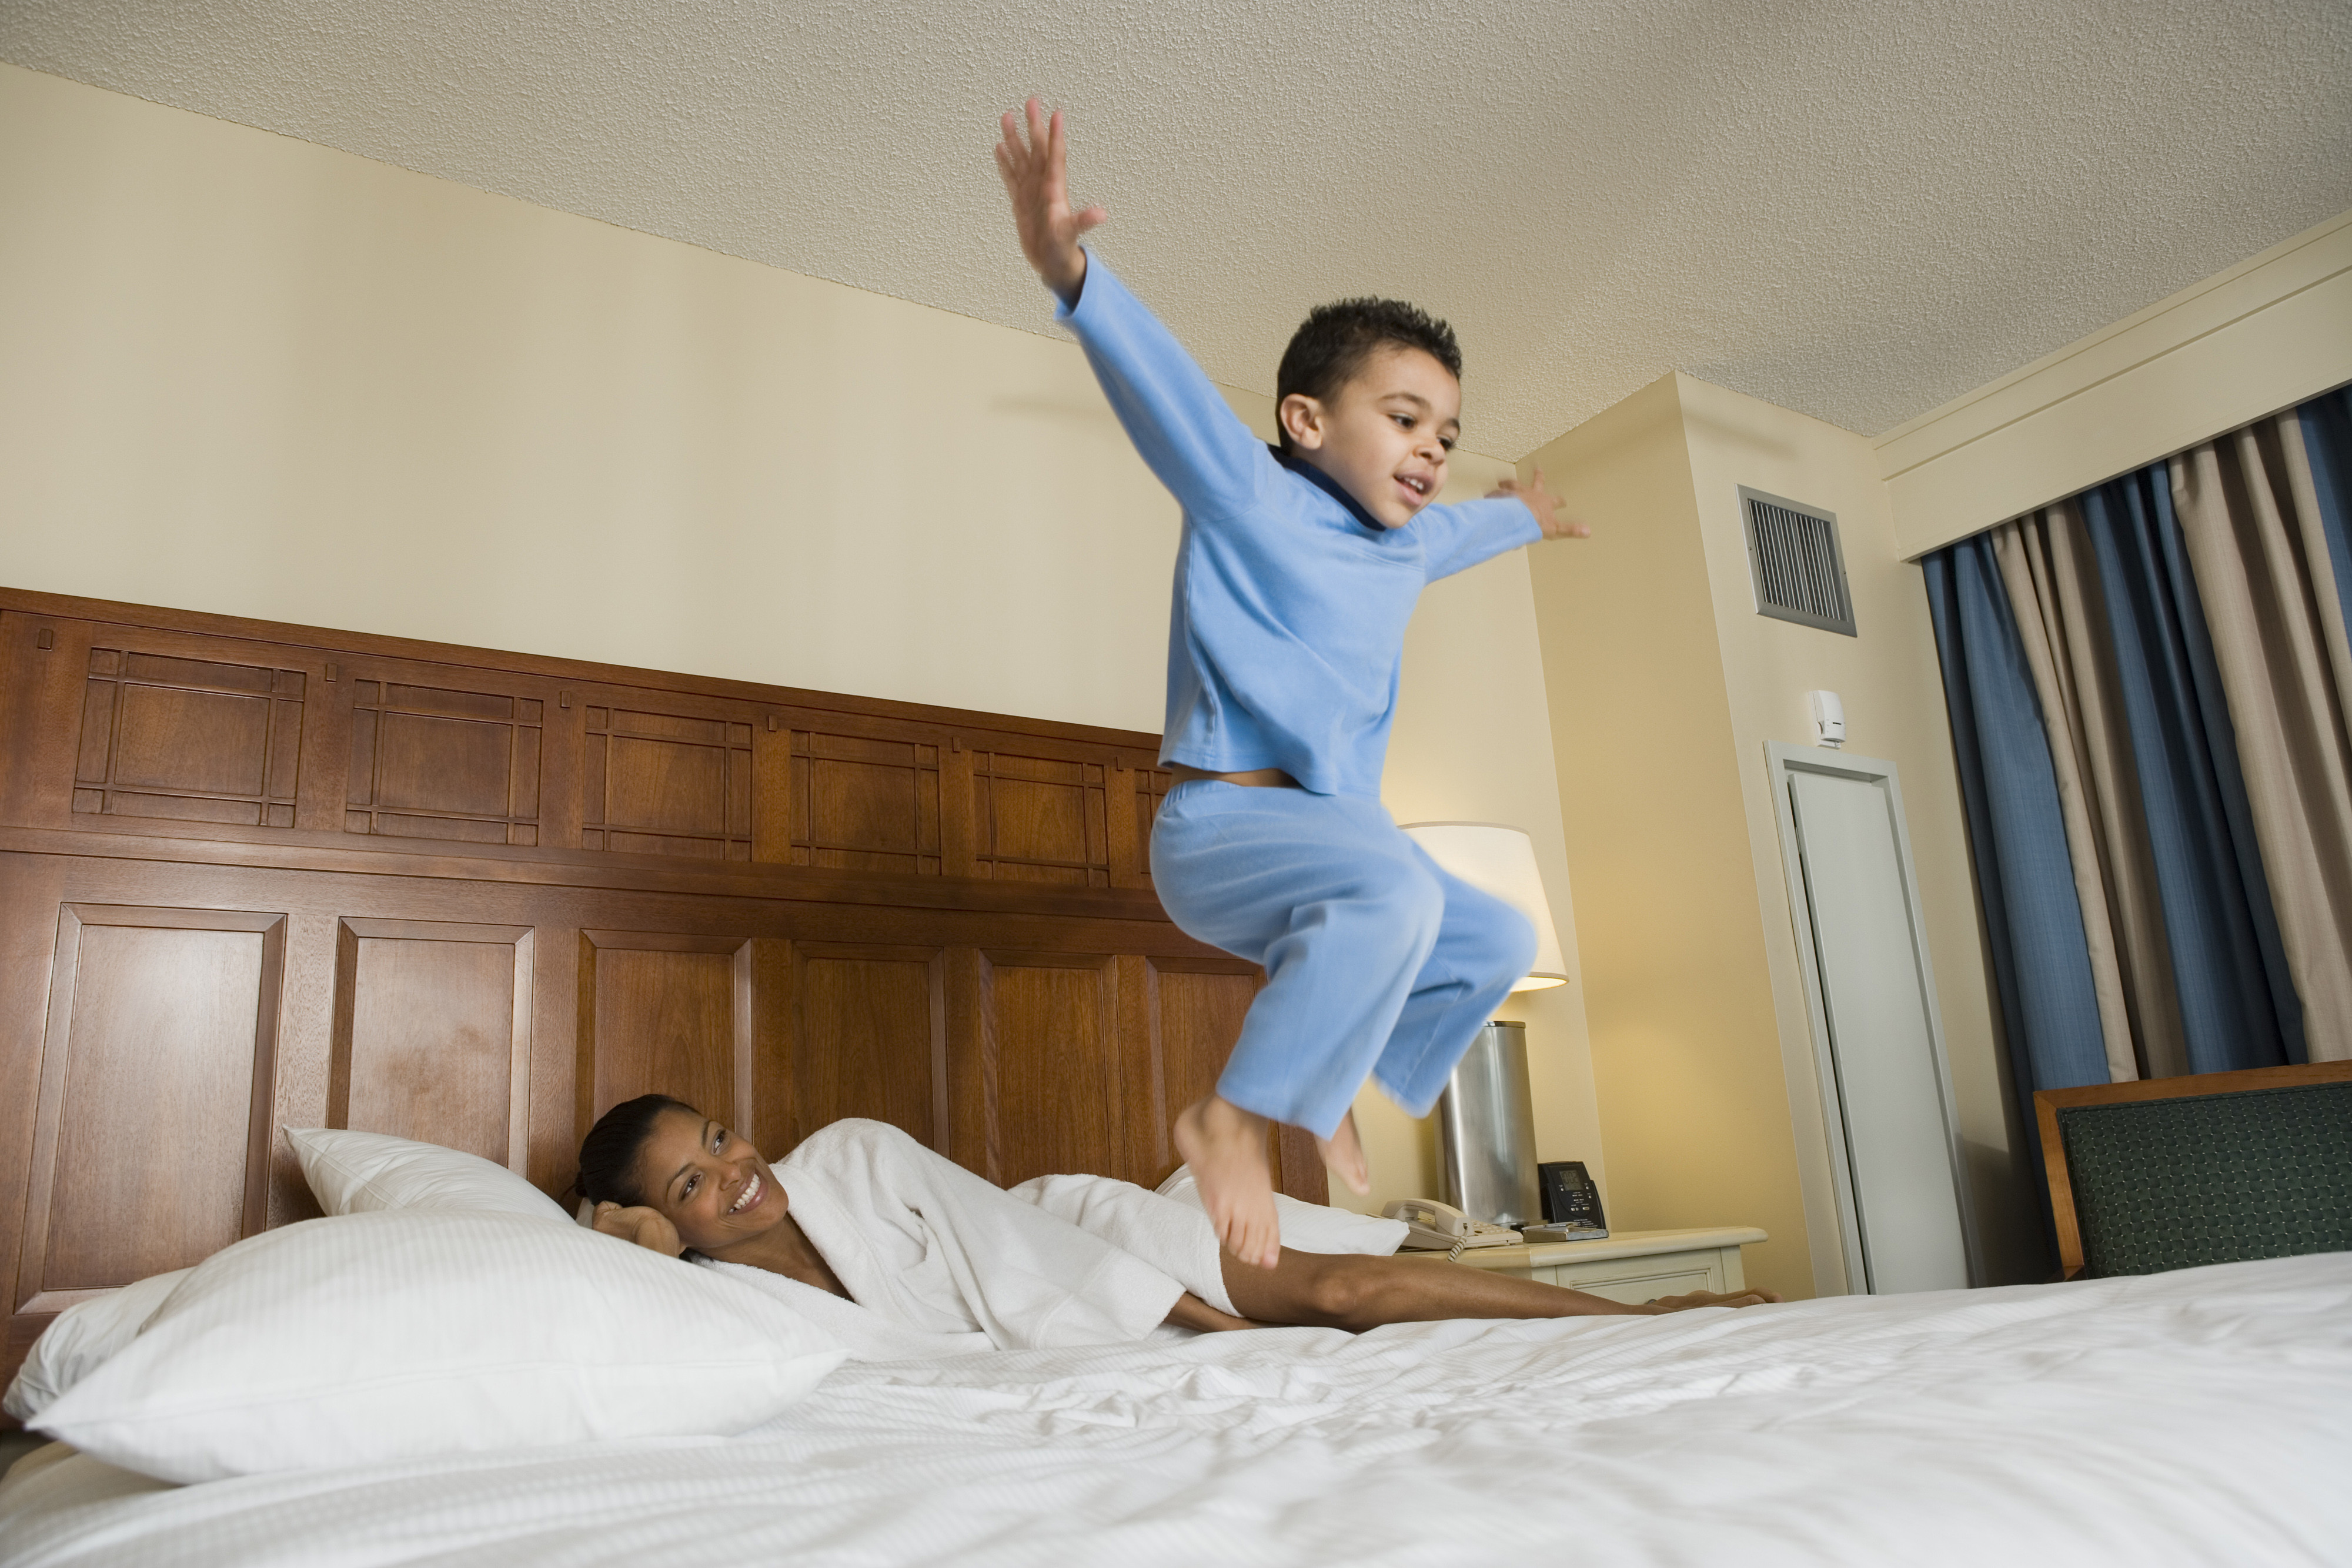 Little boy jumping on bed - Westgate Resorts